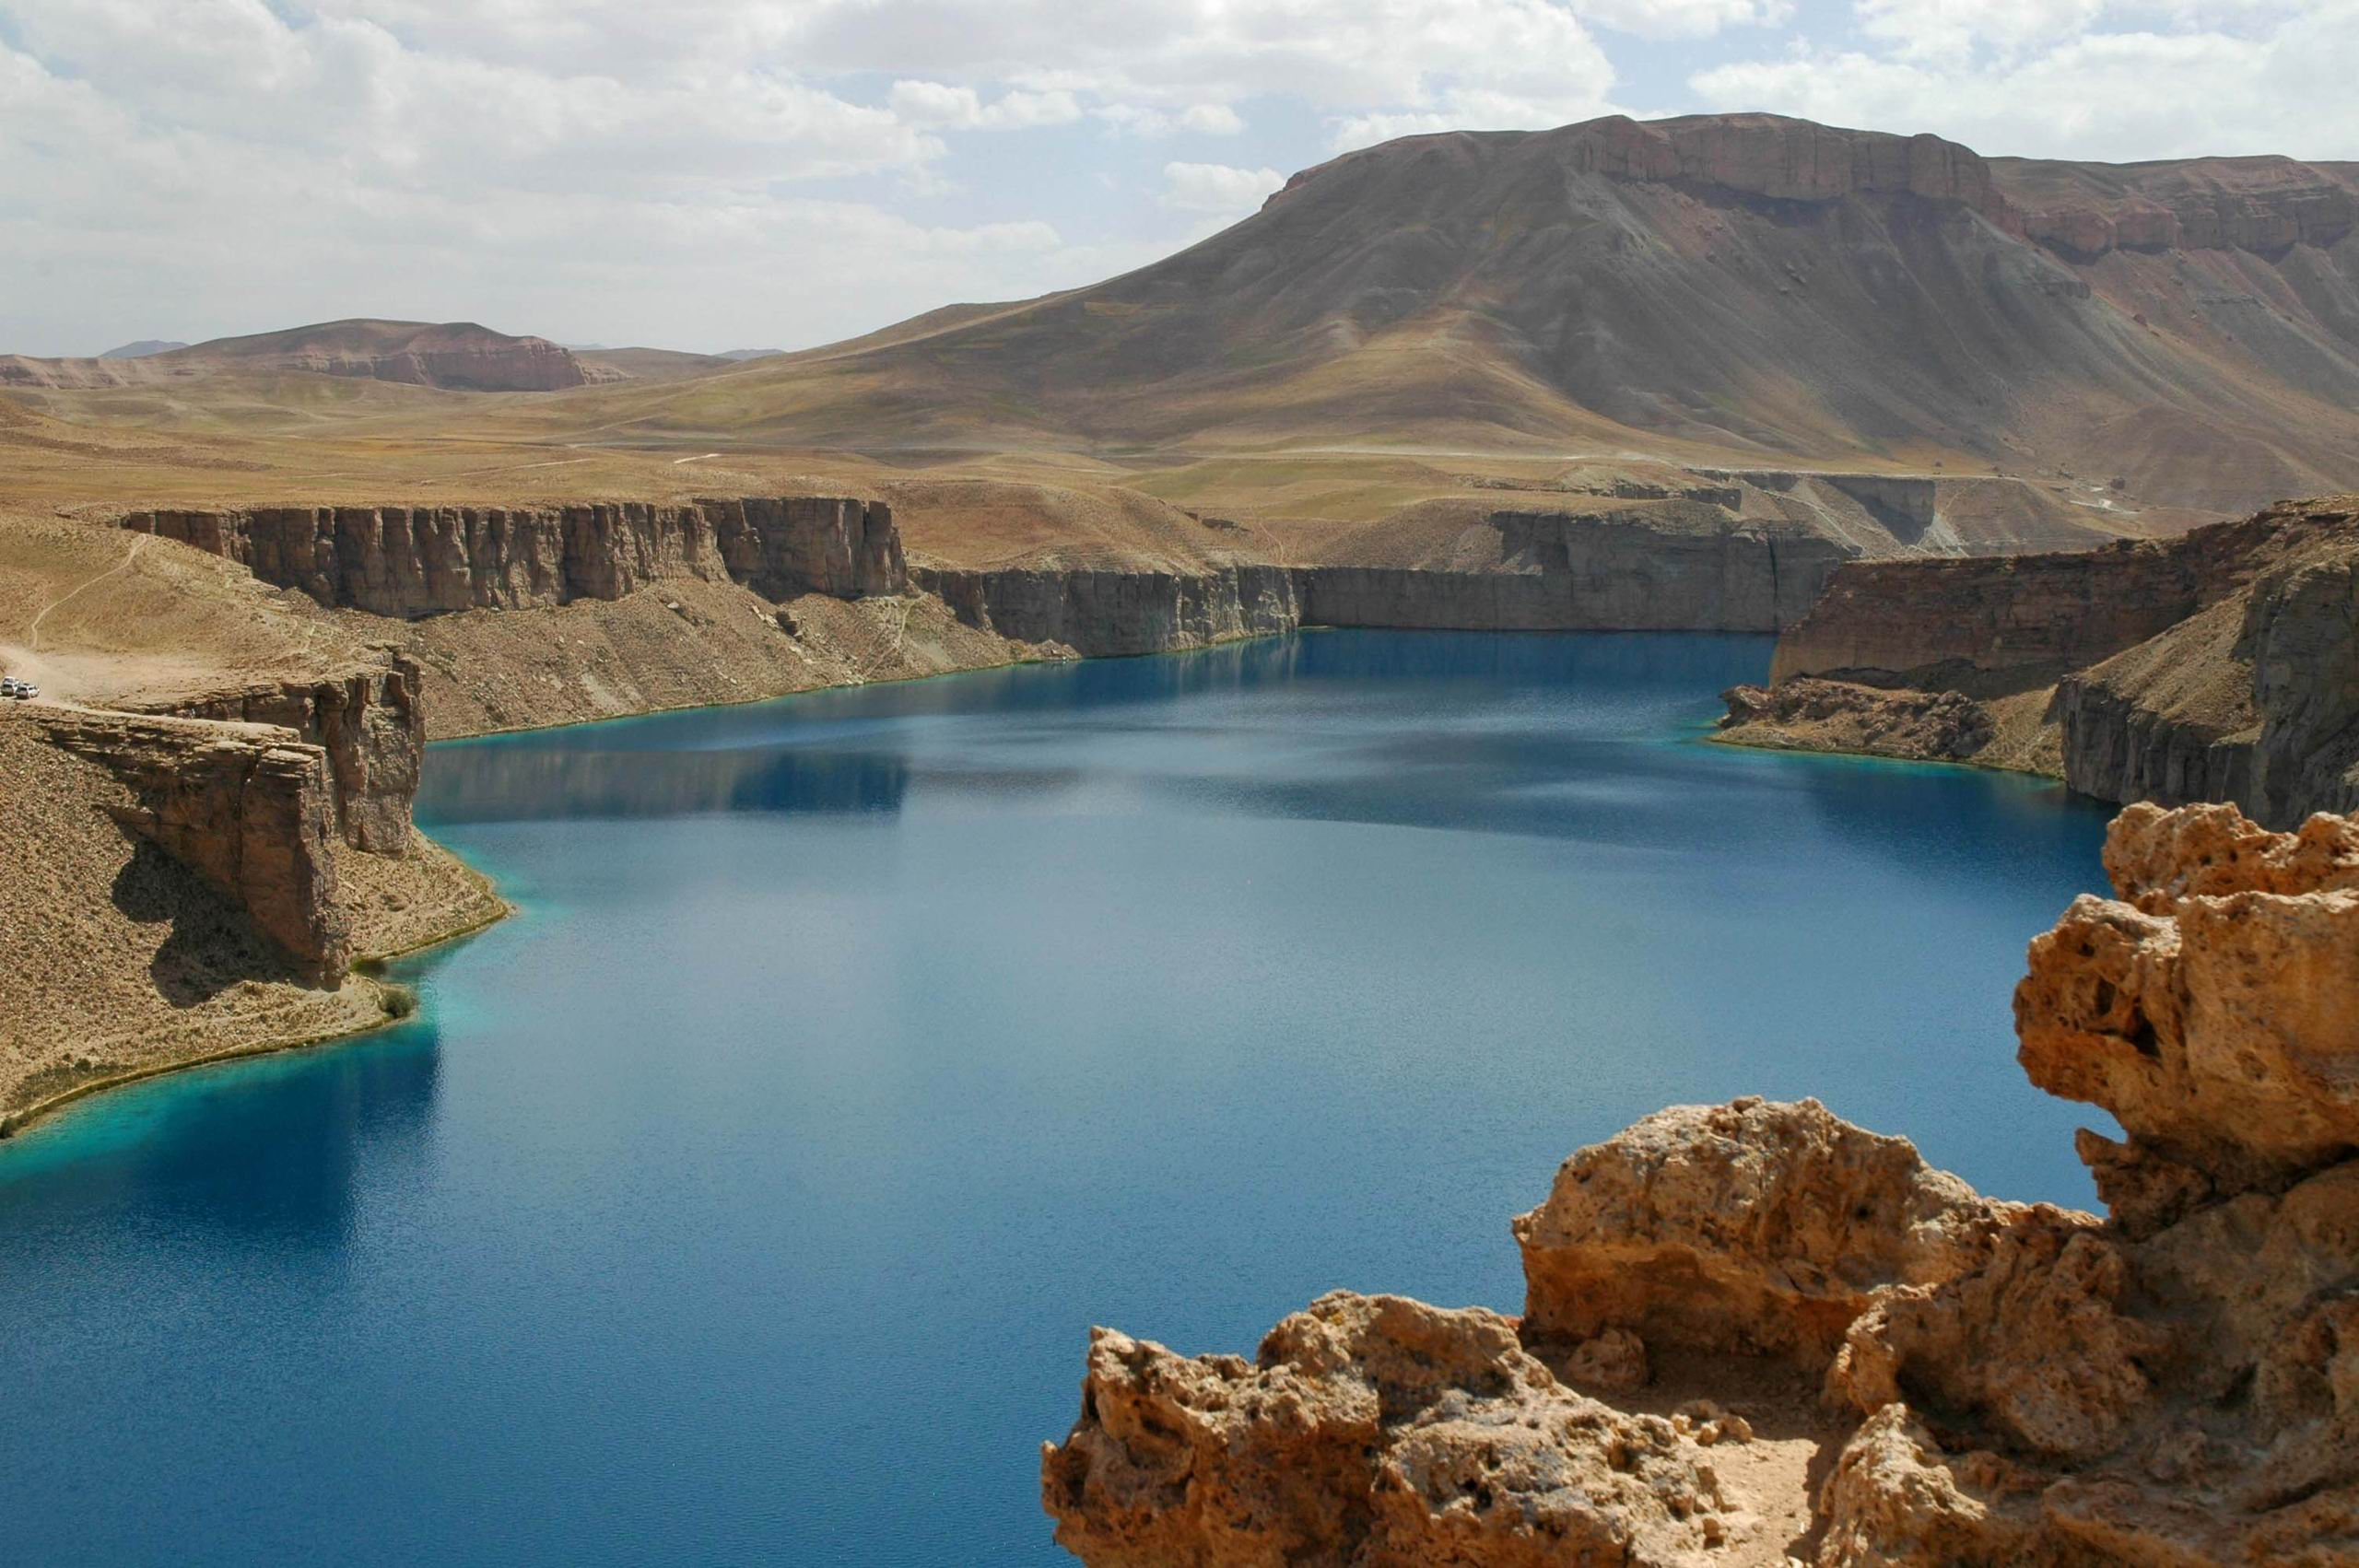 Band-e-Amir Central Asia, Band e Amir Lakes Afghanistan Wallpaper - HD Wallpapers ...